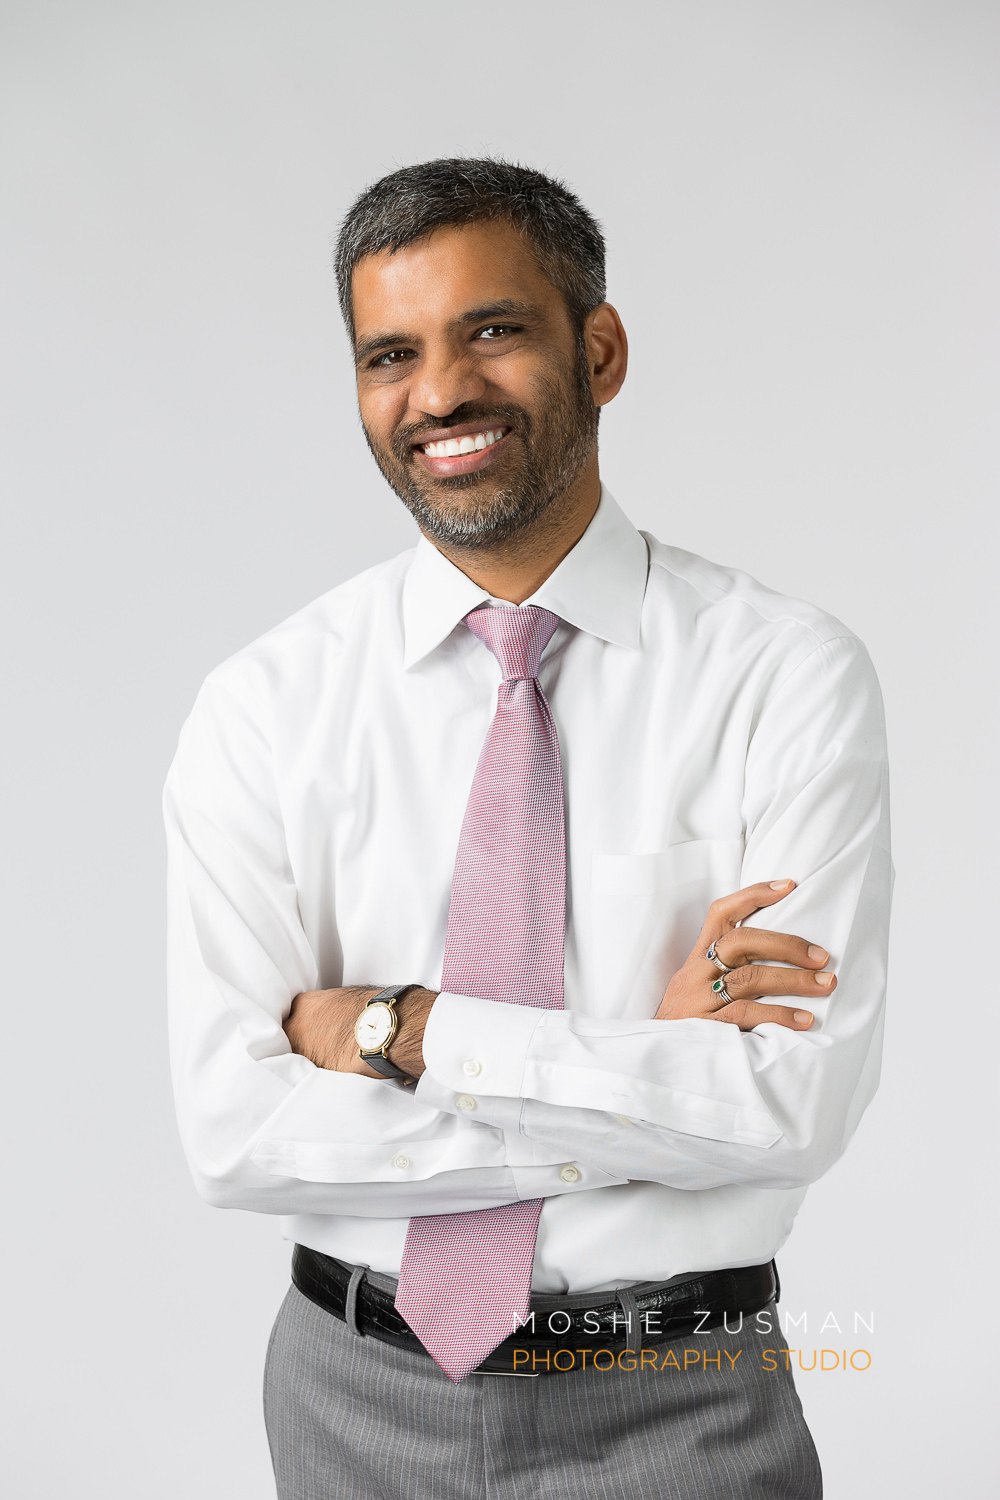 USGBC-Mahesh-corporate-head-shot-moshe-zusman-dc-4.jpg